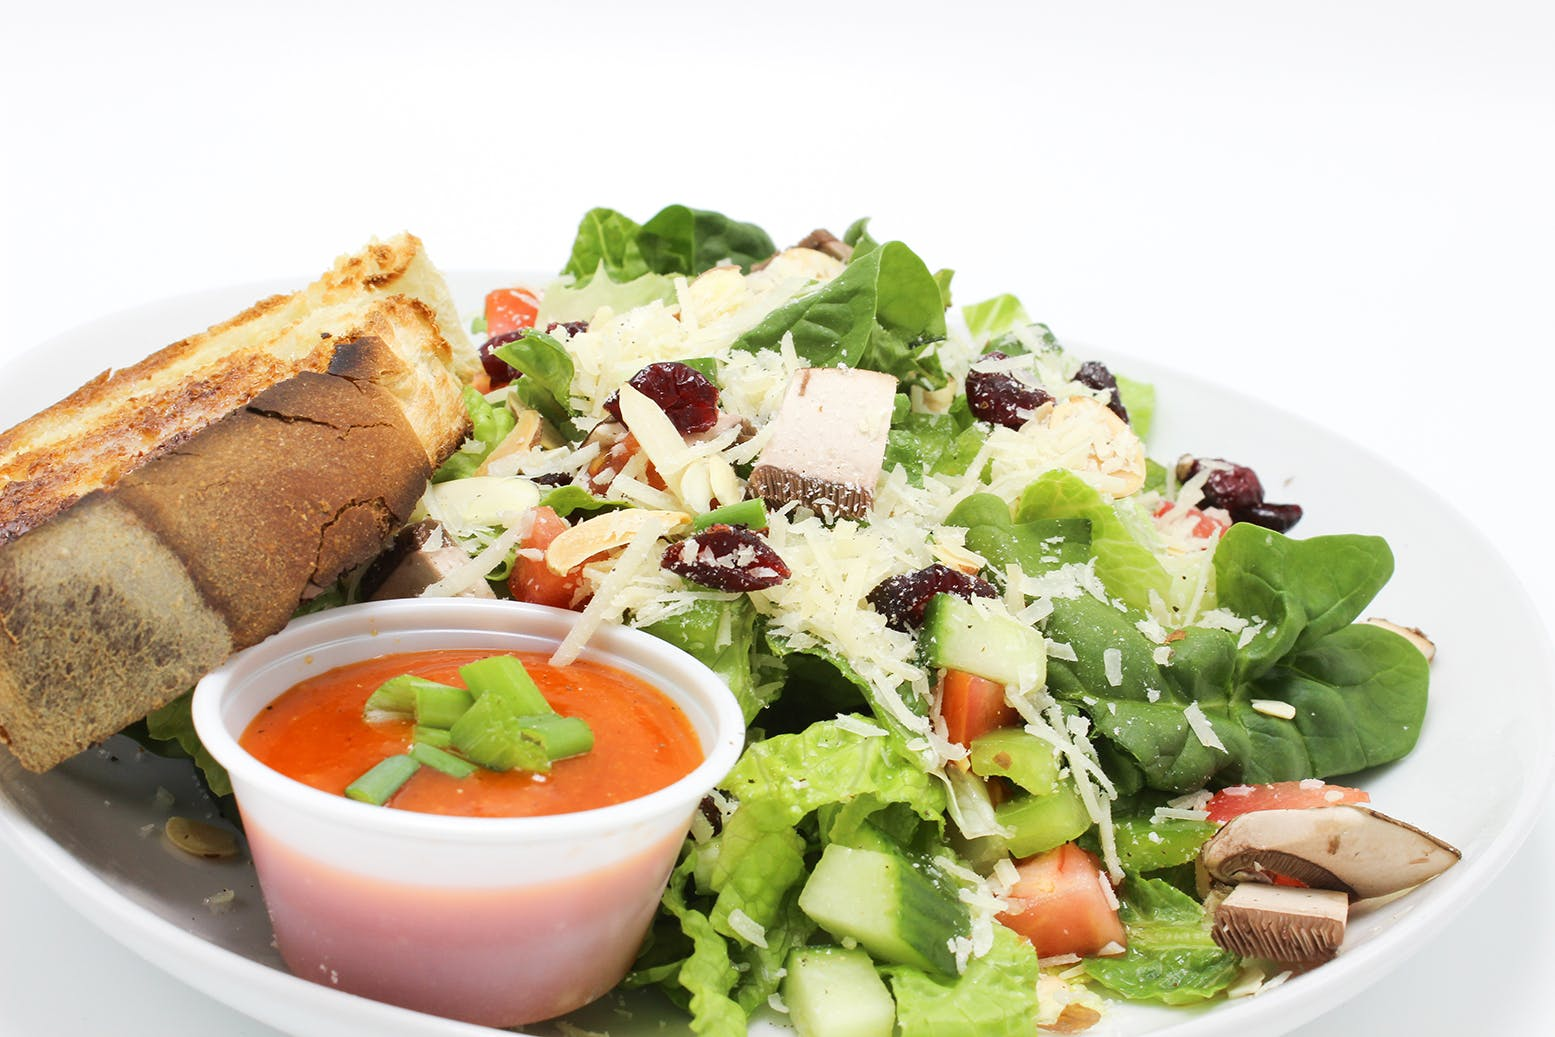 Garden Salad from Grounded Cafe in Green Bay, WI